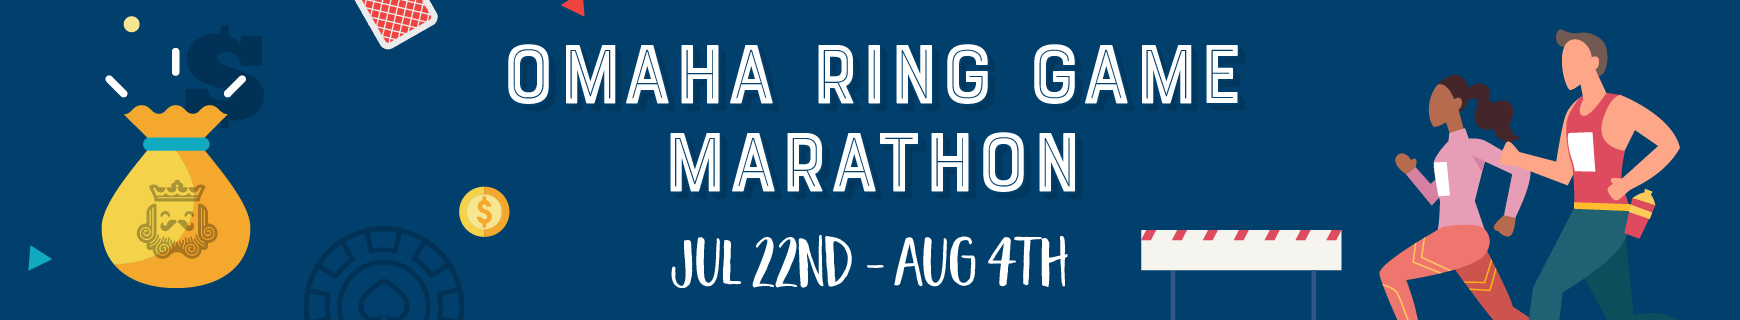 Omaha ring game marathon %28870 x 160%29 2x